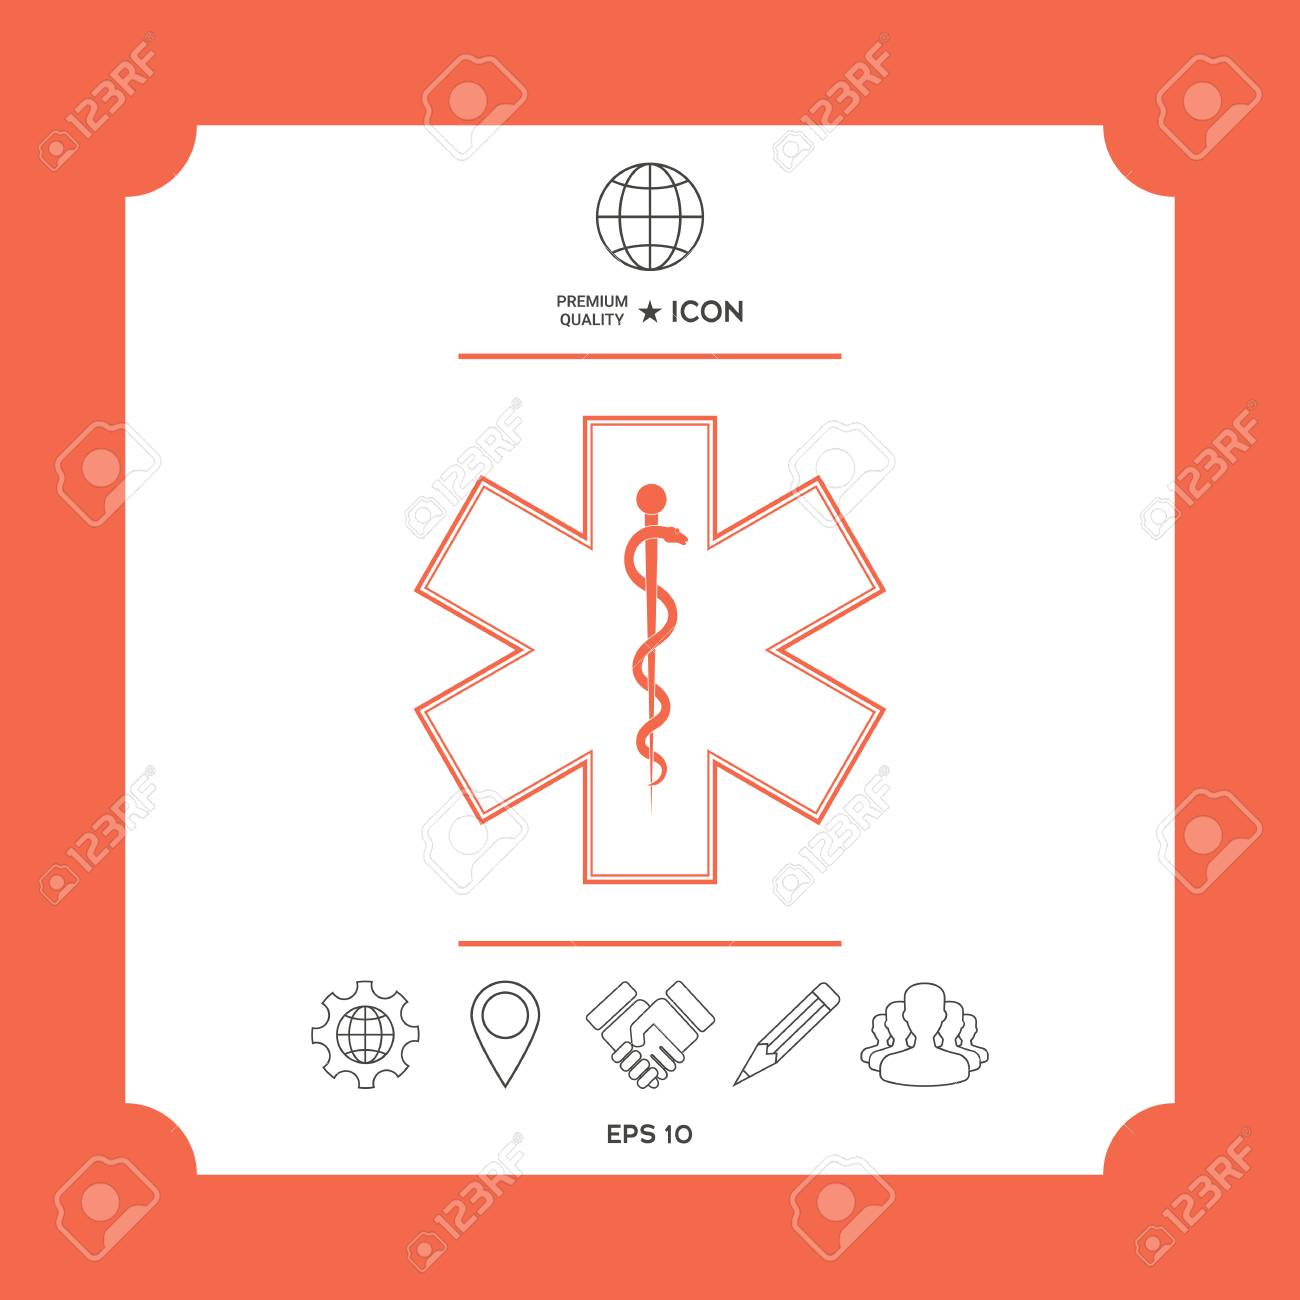 Medical Symbol Of The Emergency Star Of Life Icon In White Square